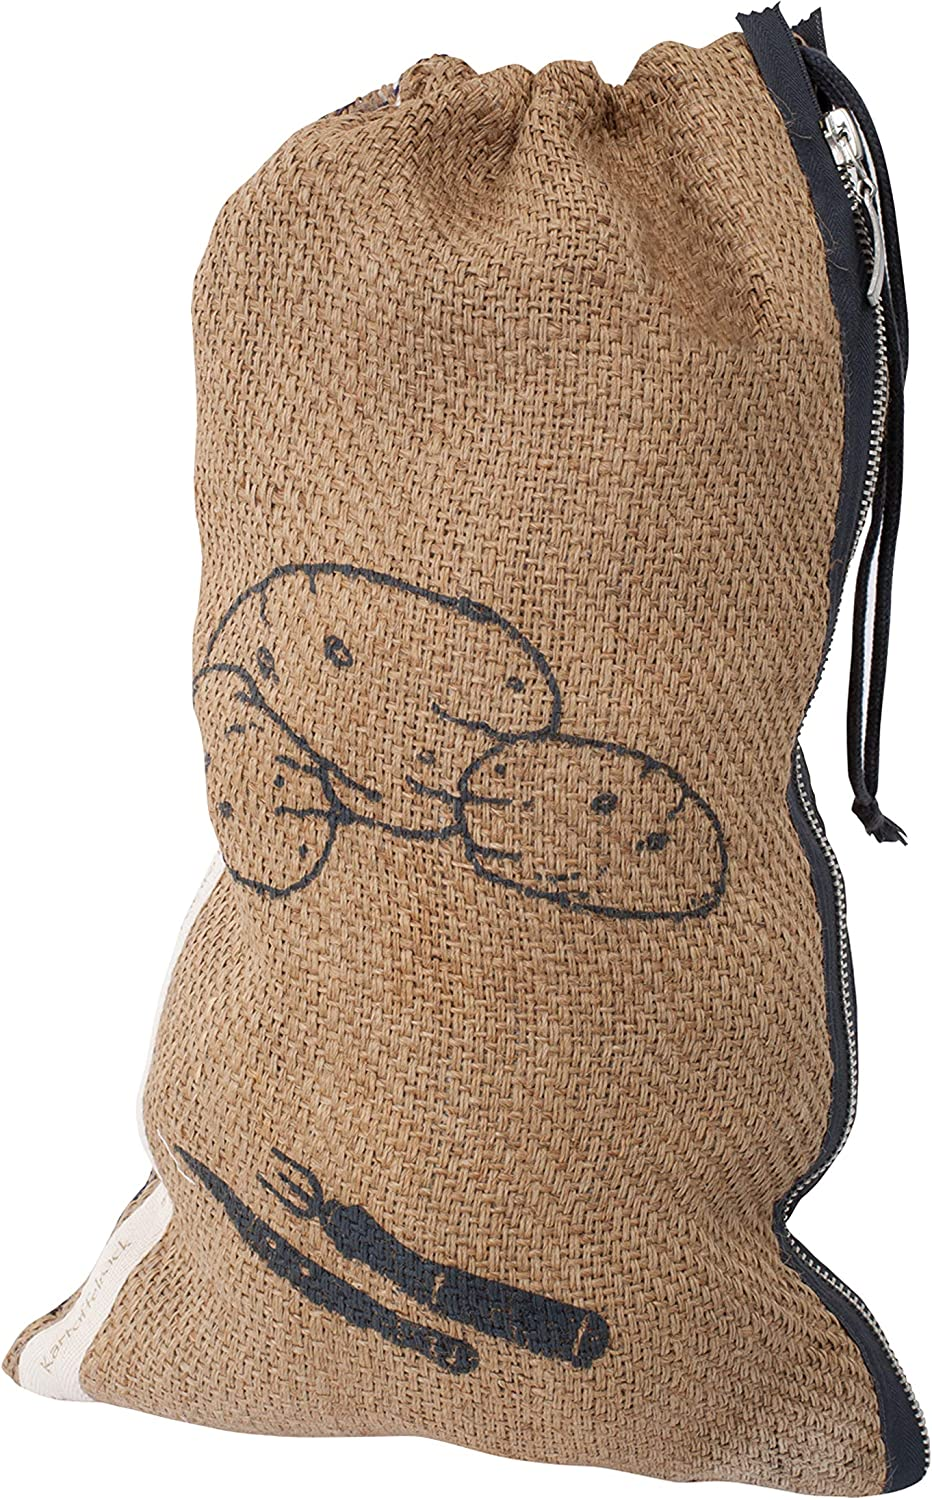 Redecker Potato Bag, Reusable Burlap and Cotton Produce Sack with Drawstring Closure, Keeps Food Fresh, 12 x 20 inches